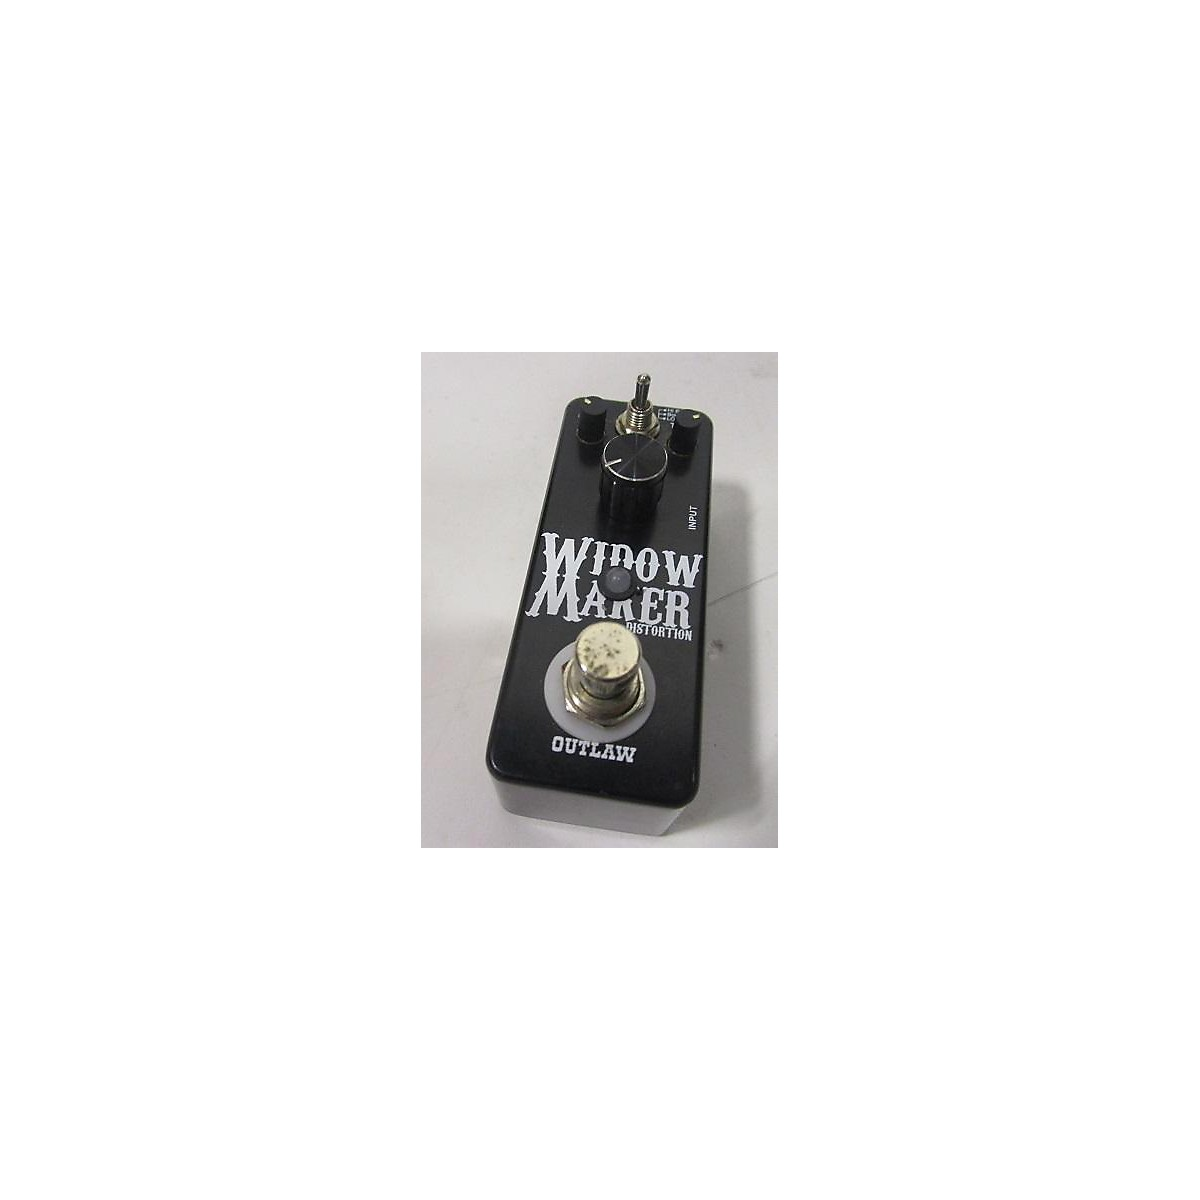 Outlaw Effects WIDOW MAKER Effect Pedal